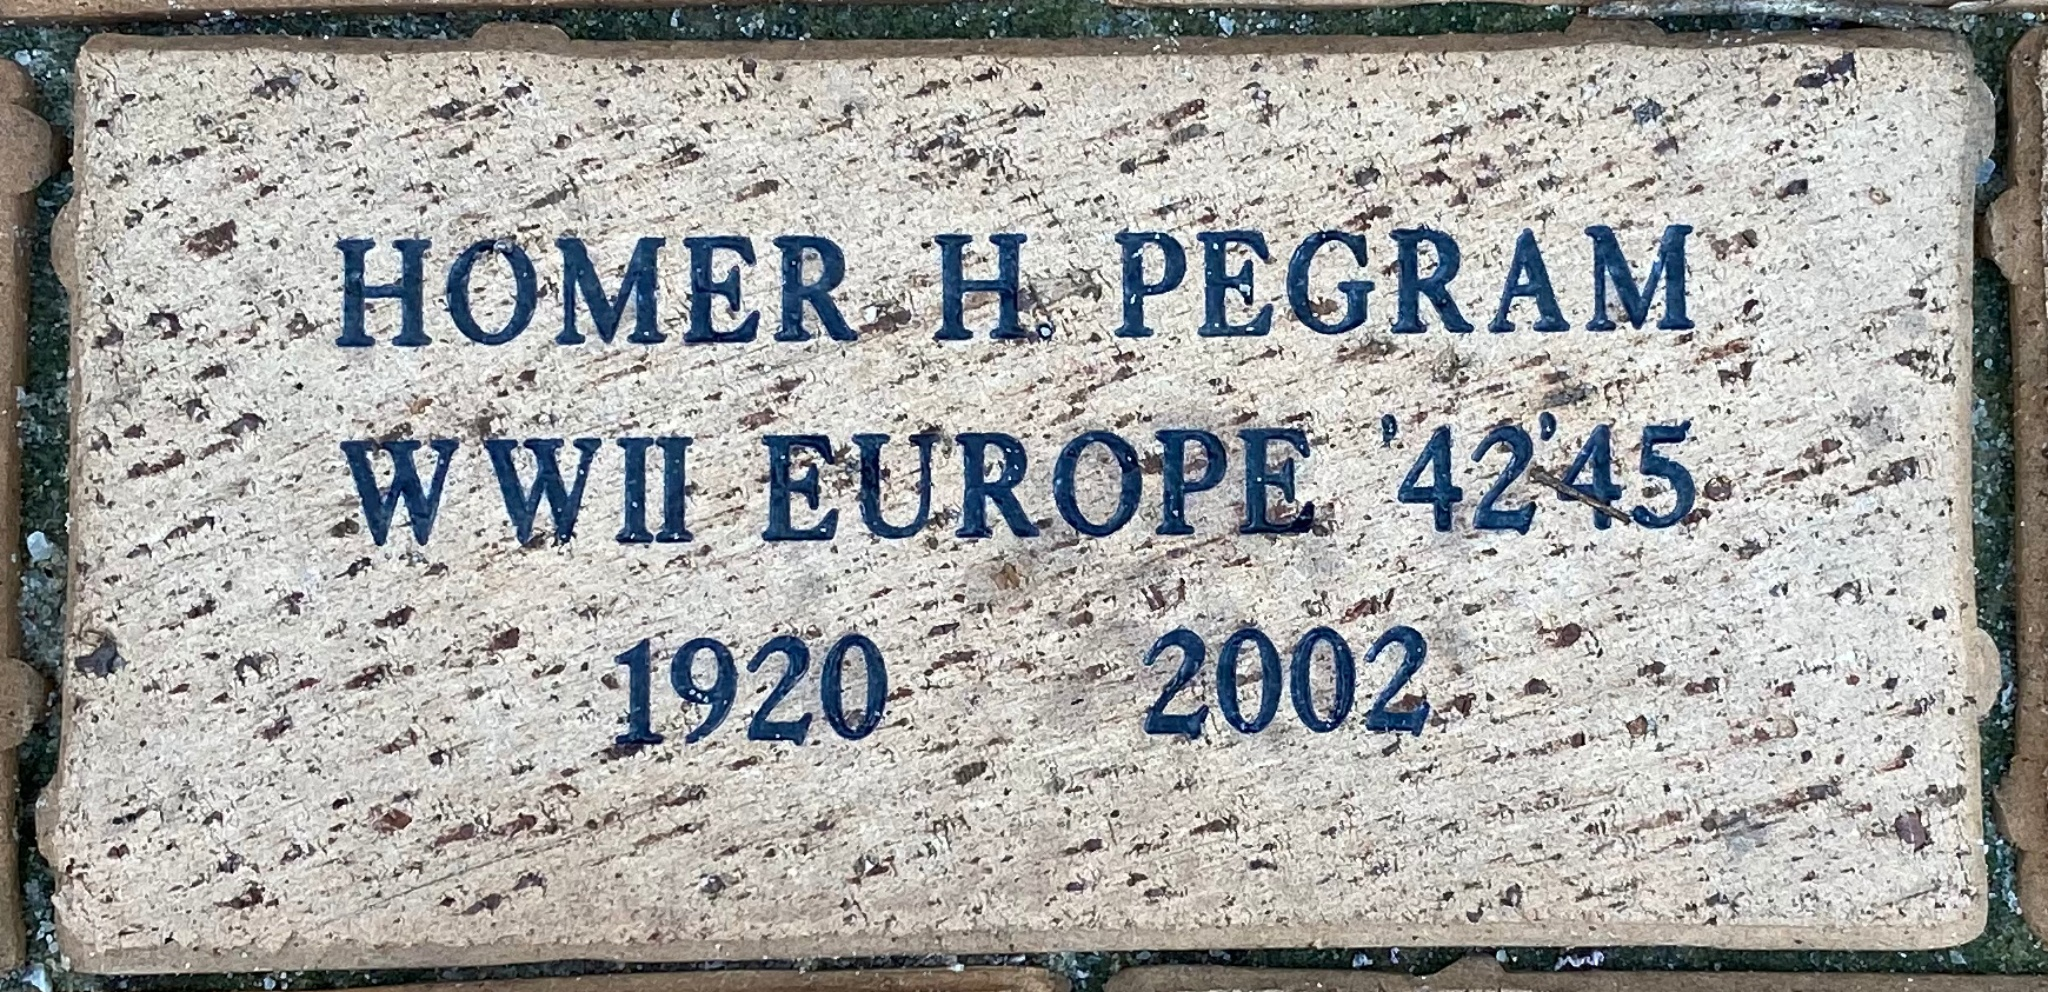 HOMER H. PEGRAM WWII EUROPE '42 '45 1920 2002